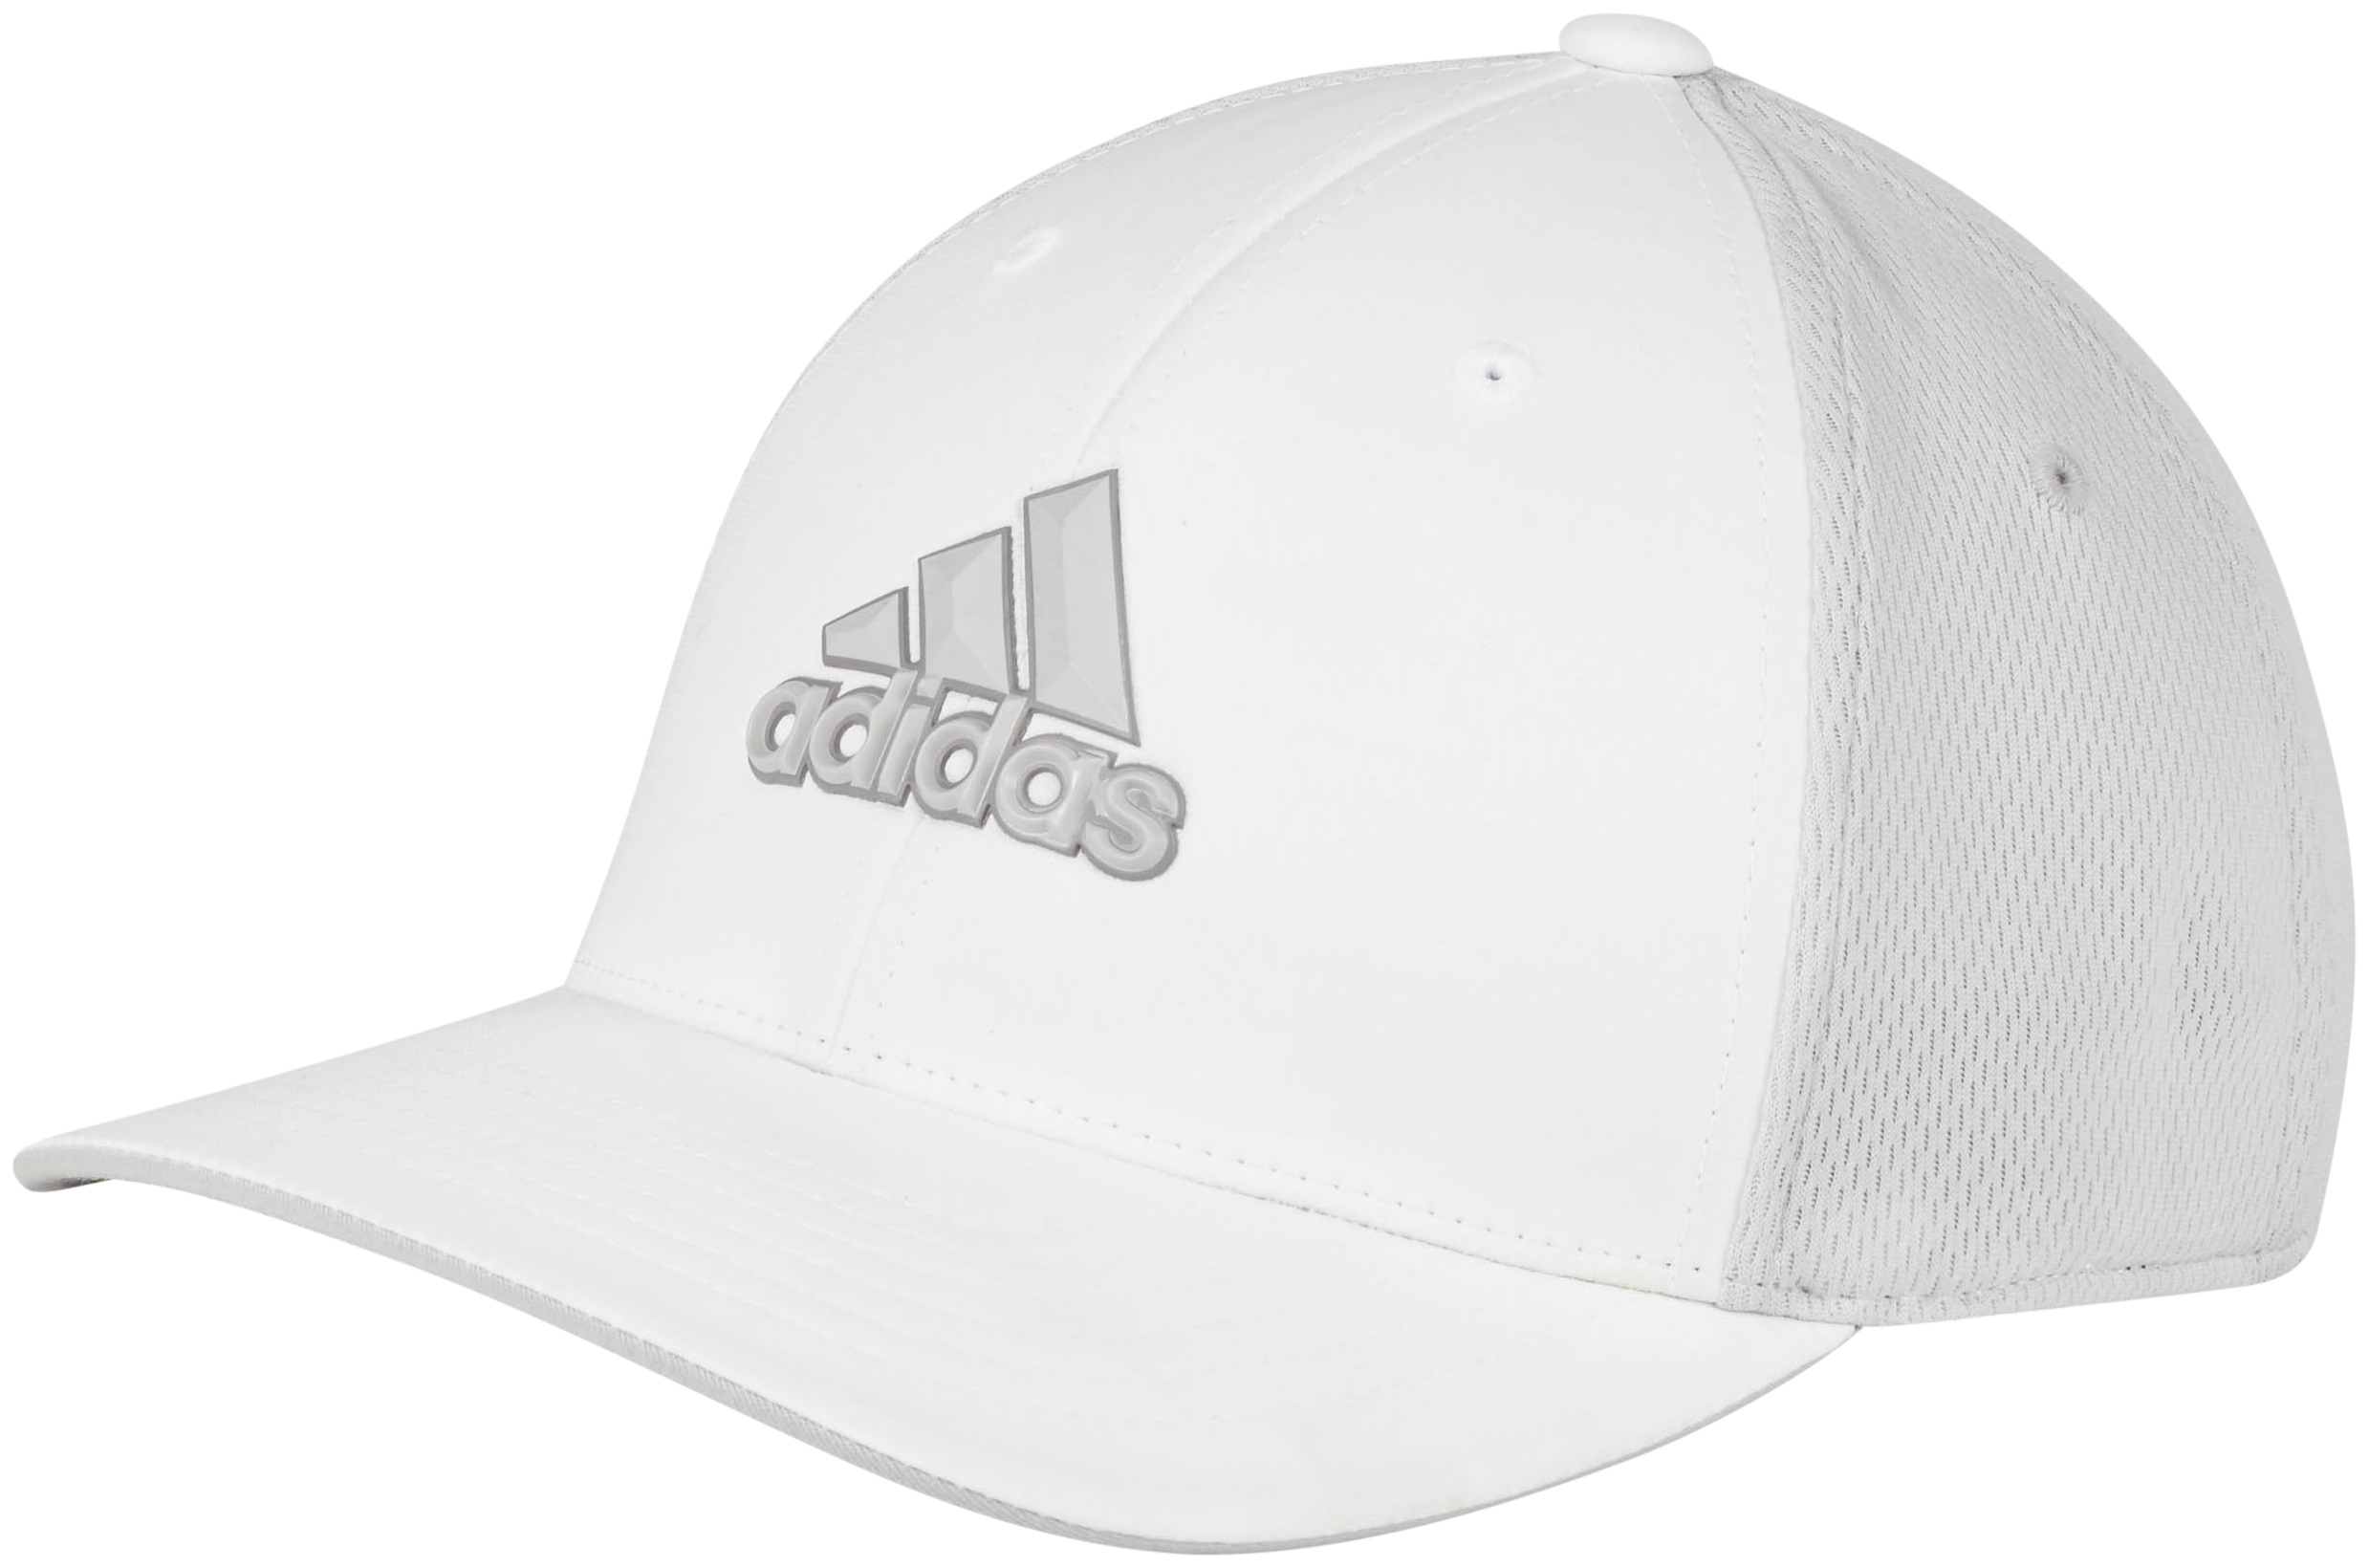 7e7923bd7a355 Adidas Golf A-Stretch Tour Hat